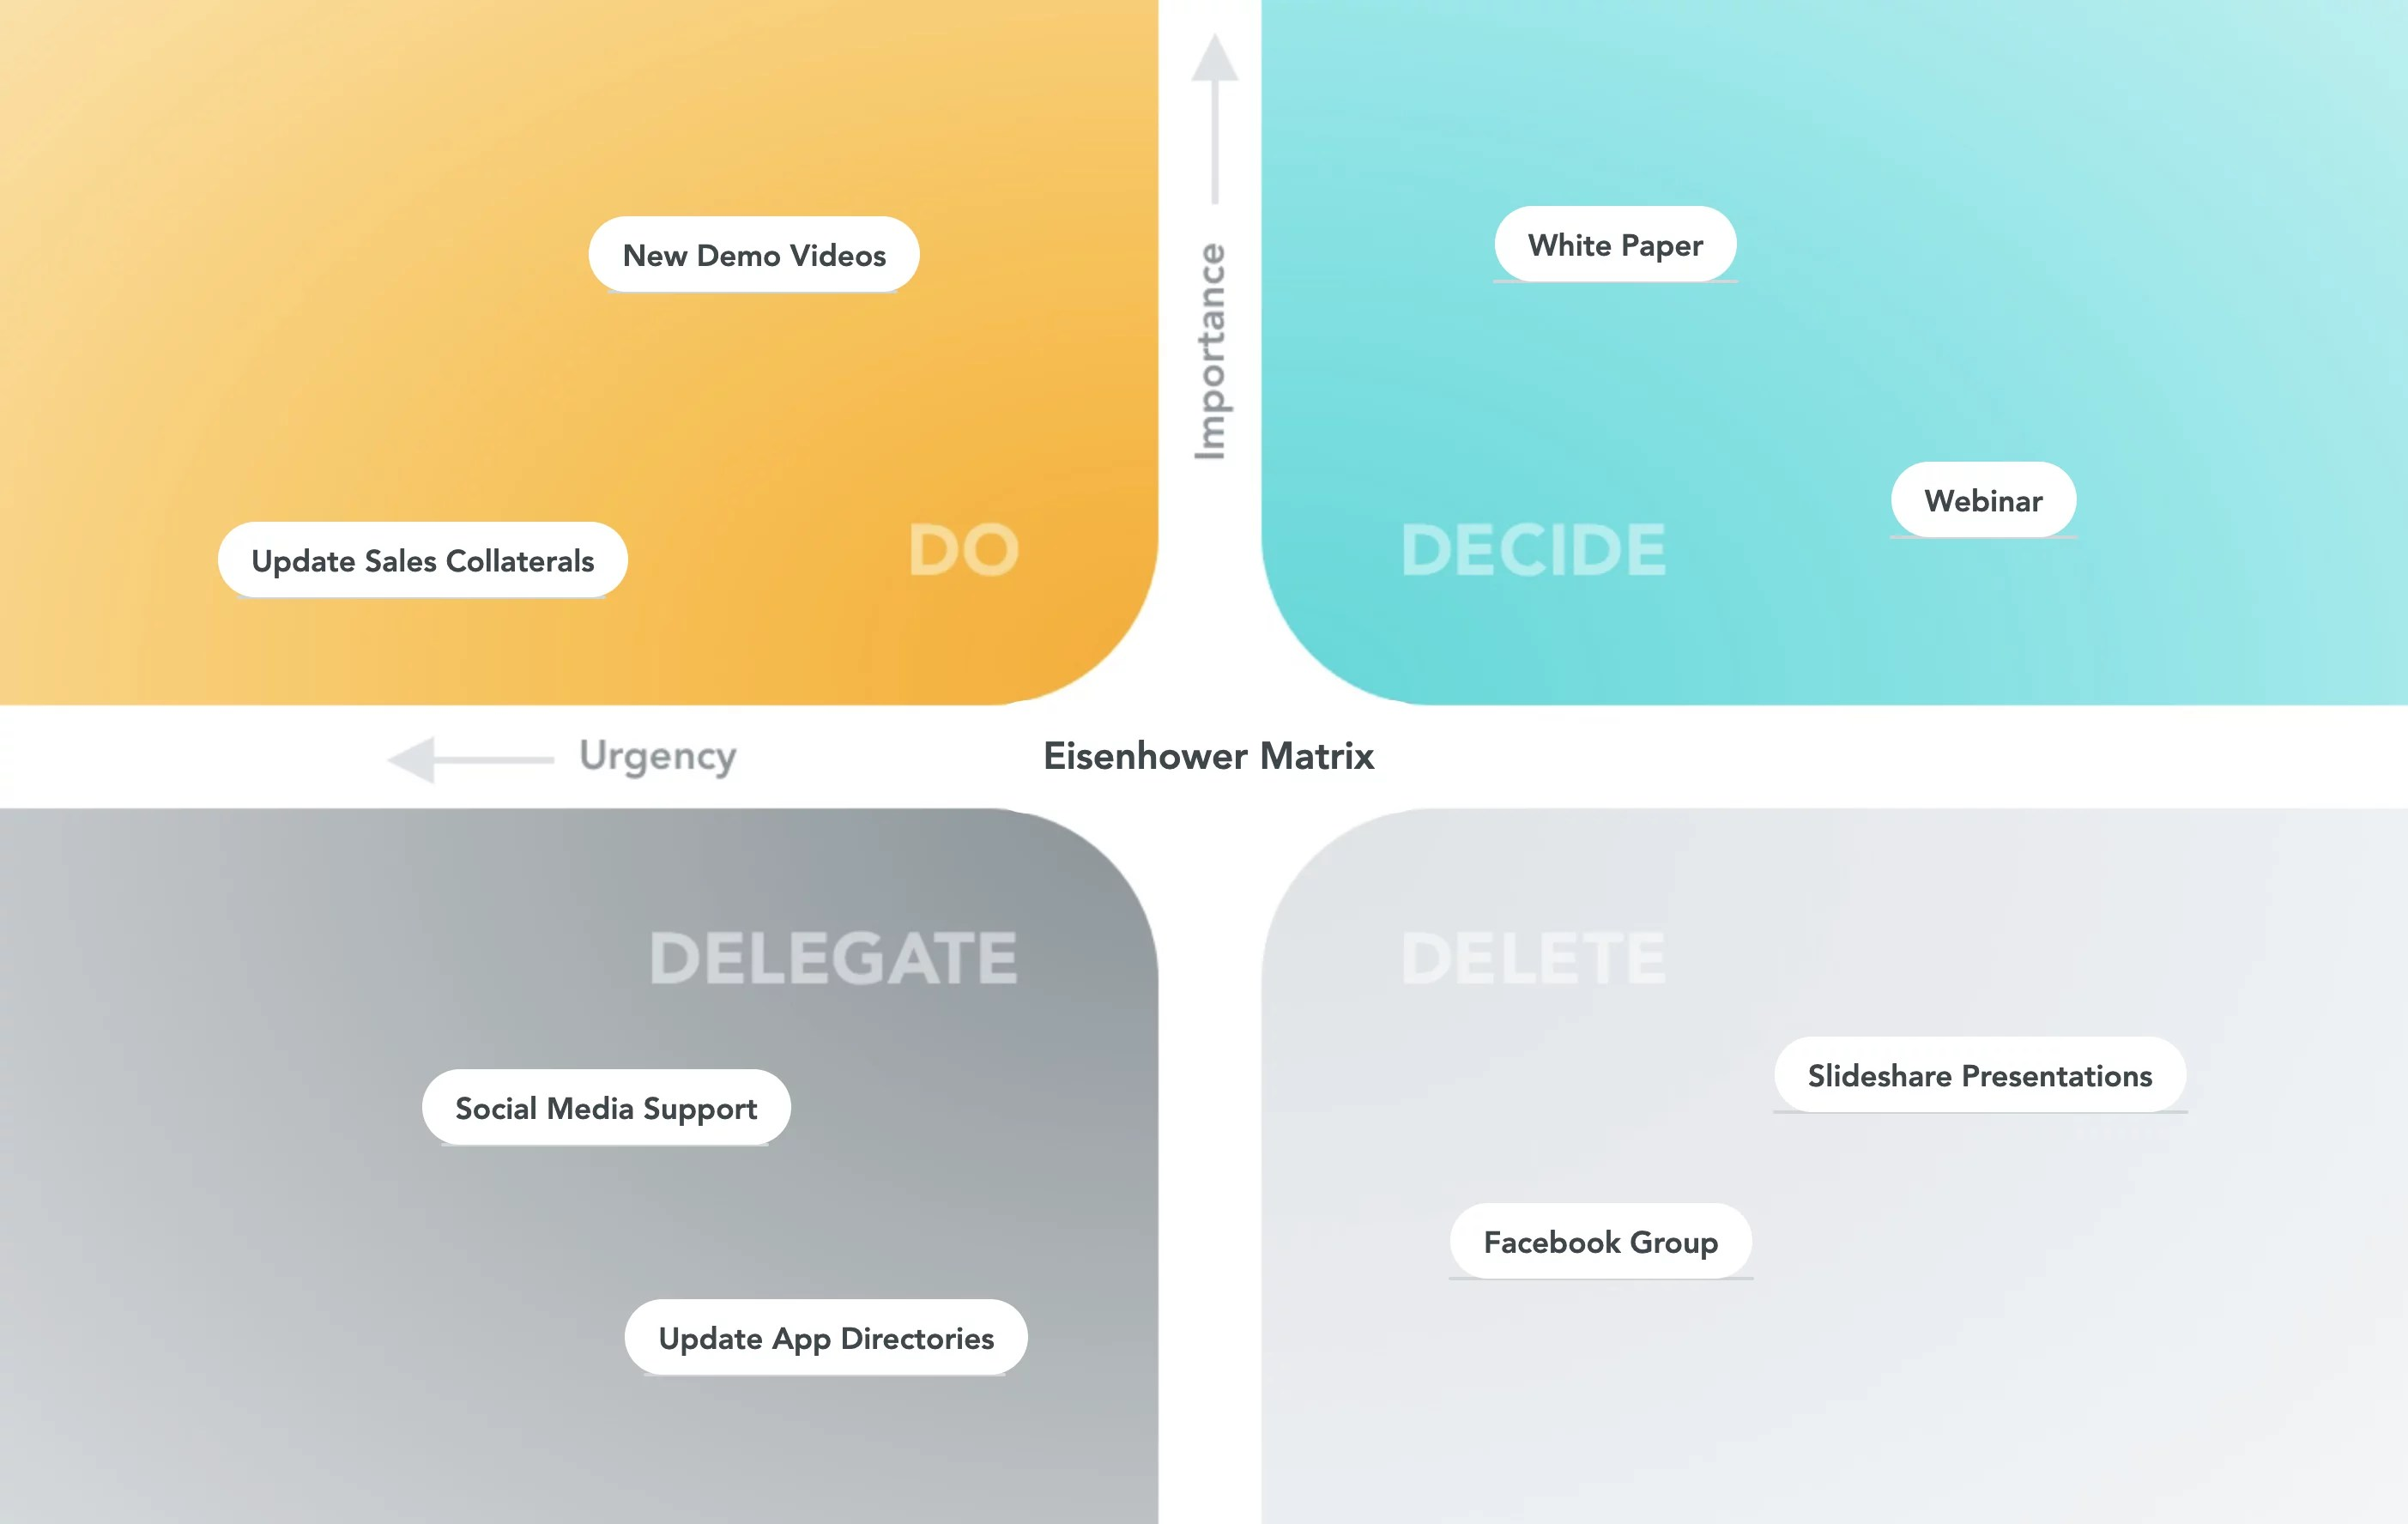 Make Better Business Decisions With These Three Templates